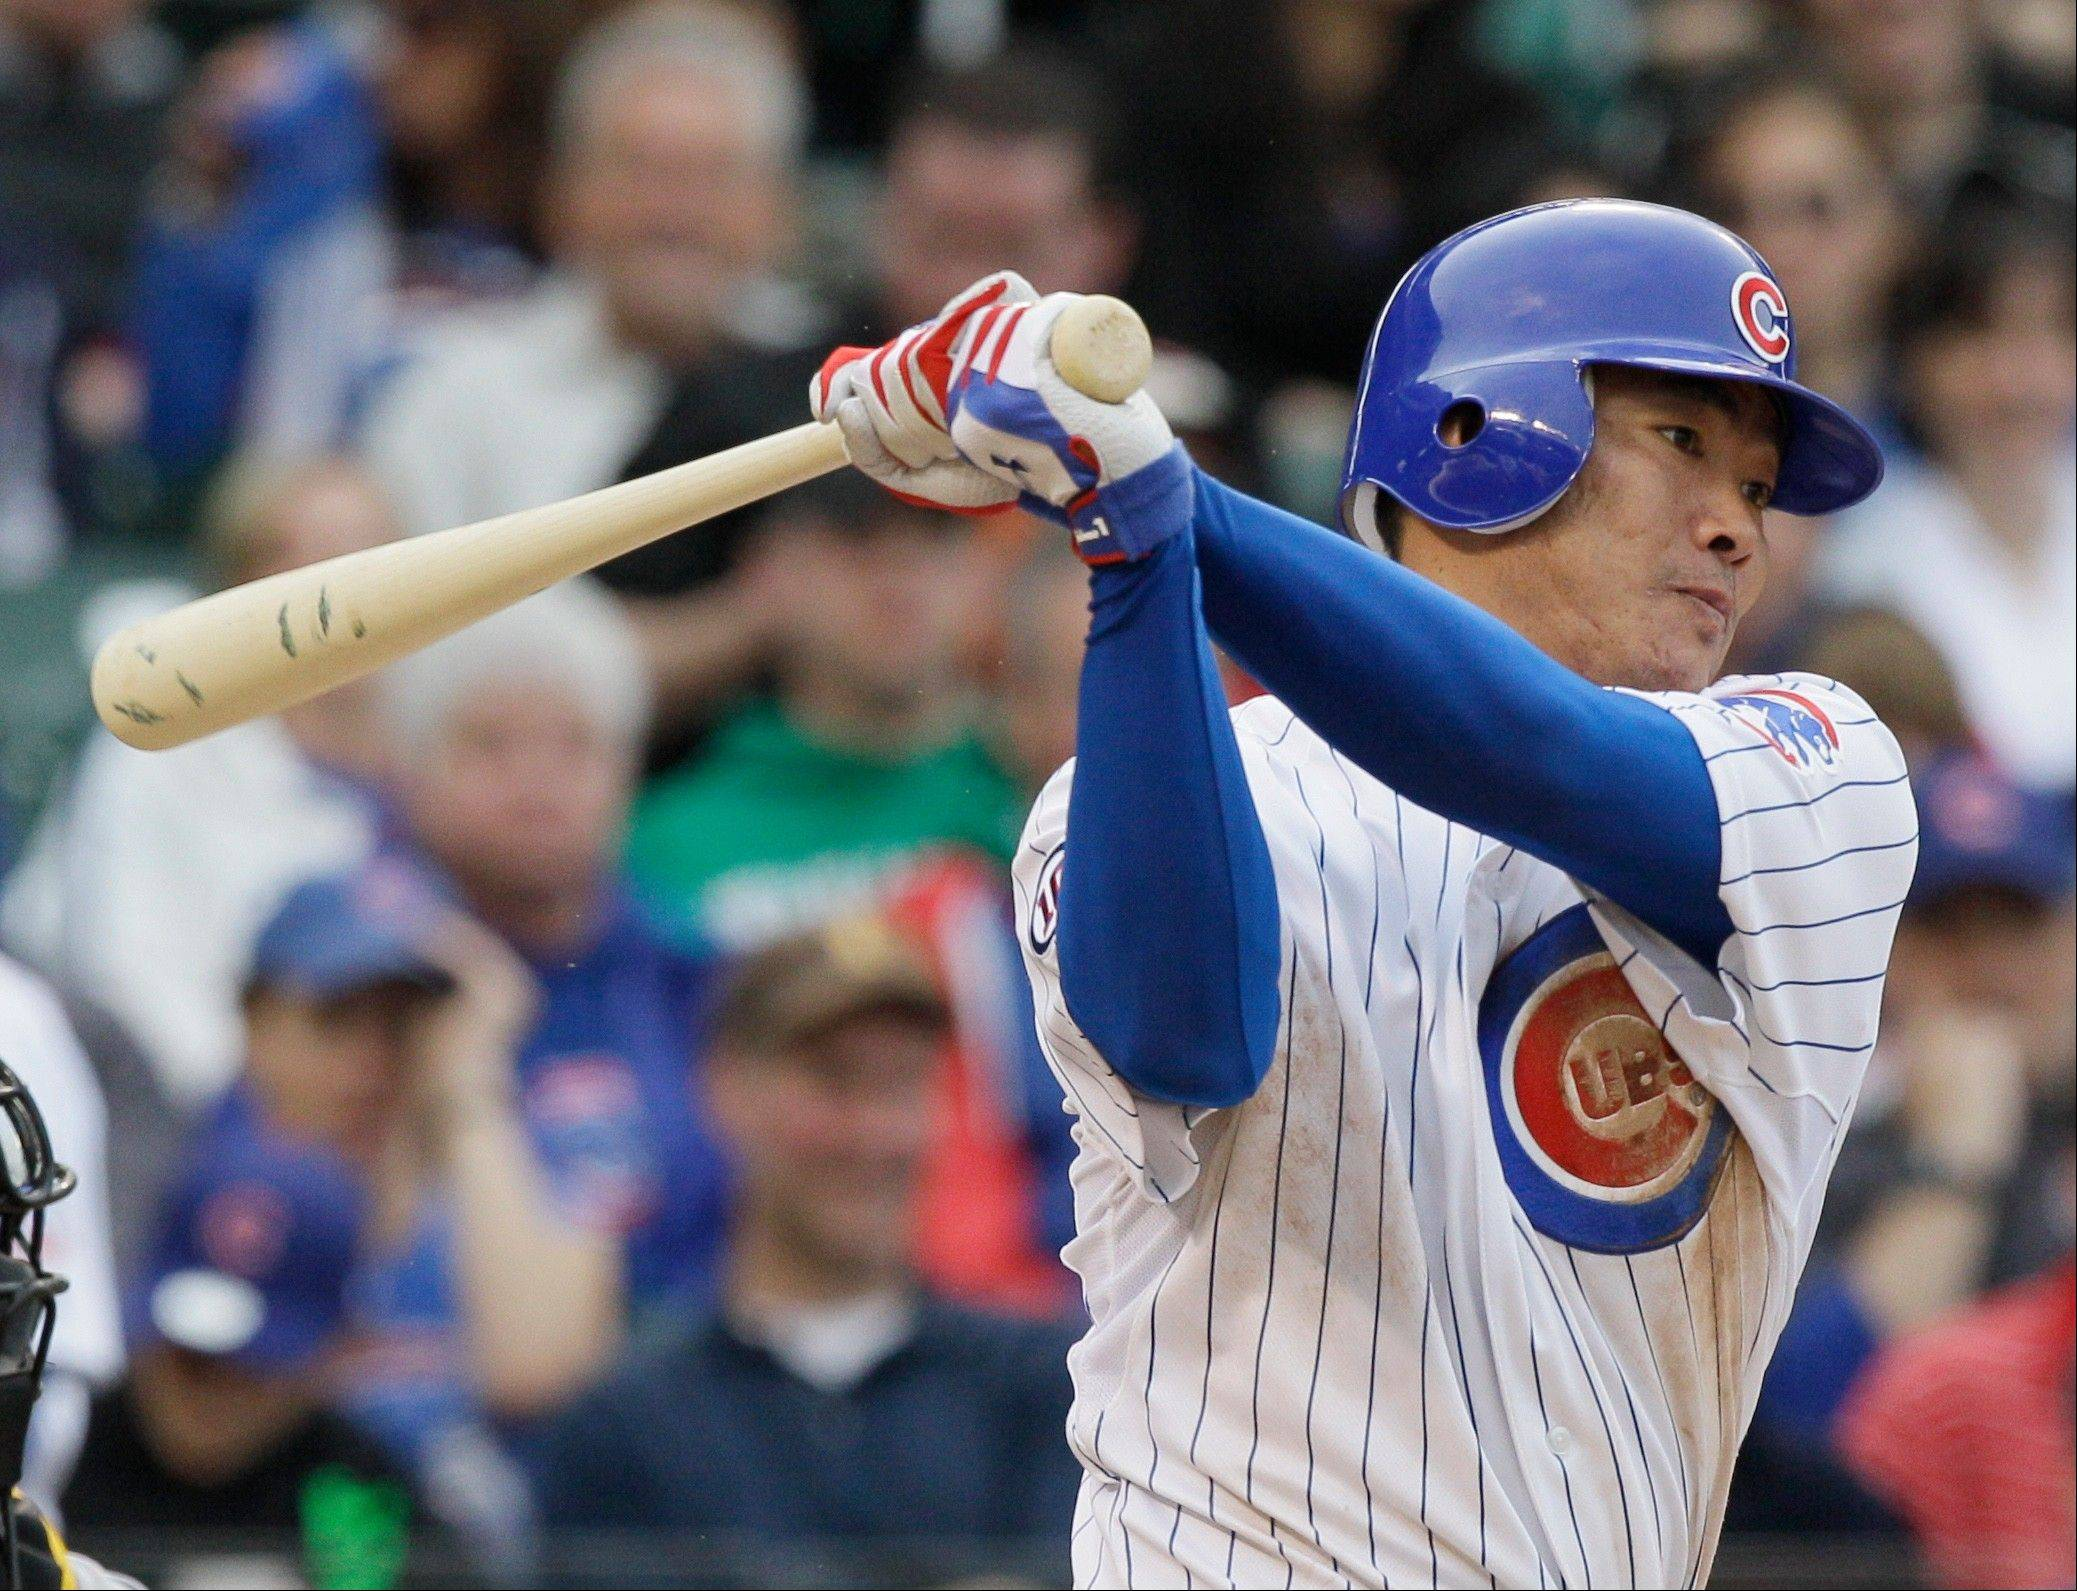 After four seasons with the Cubs, outfielder Kosuke Fukudome is now the property of the Cleveland Indians. The Cubs acquired two minor league prospects in the deal.